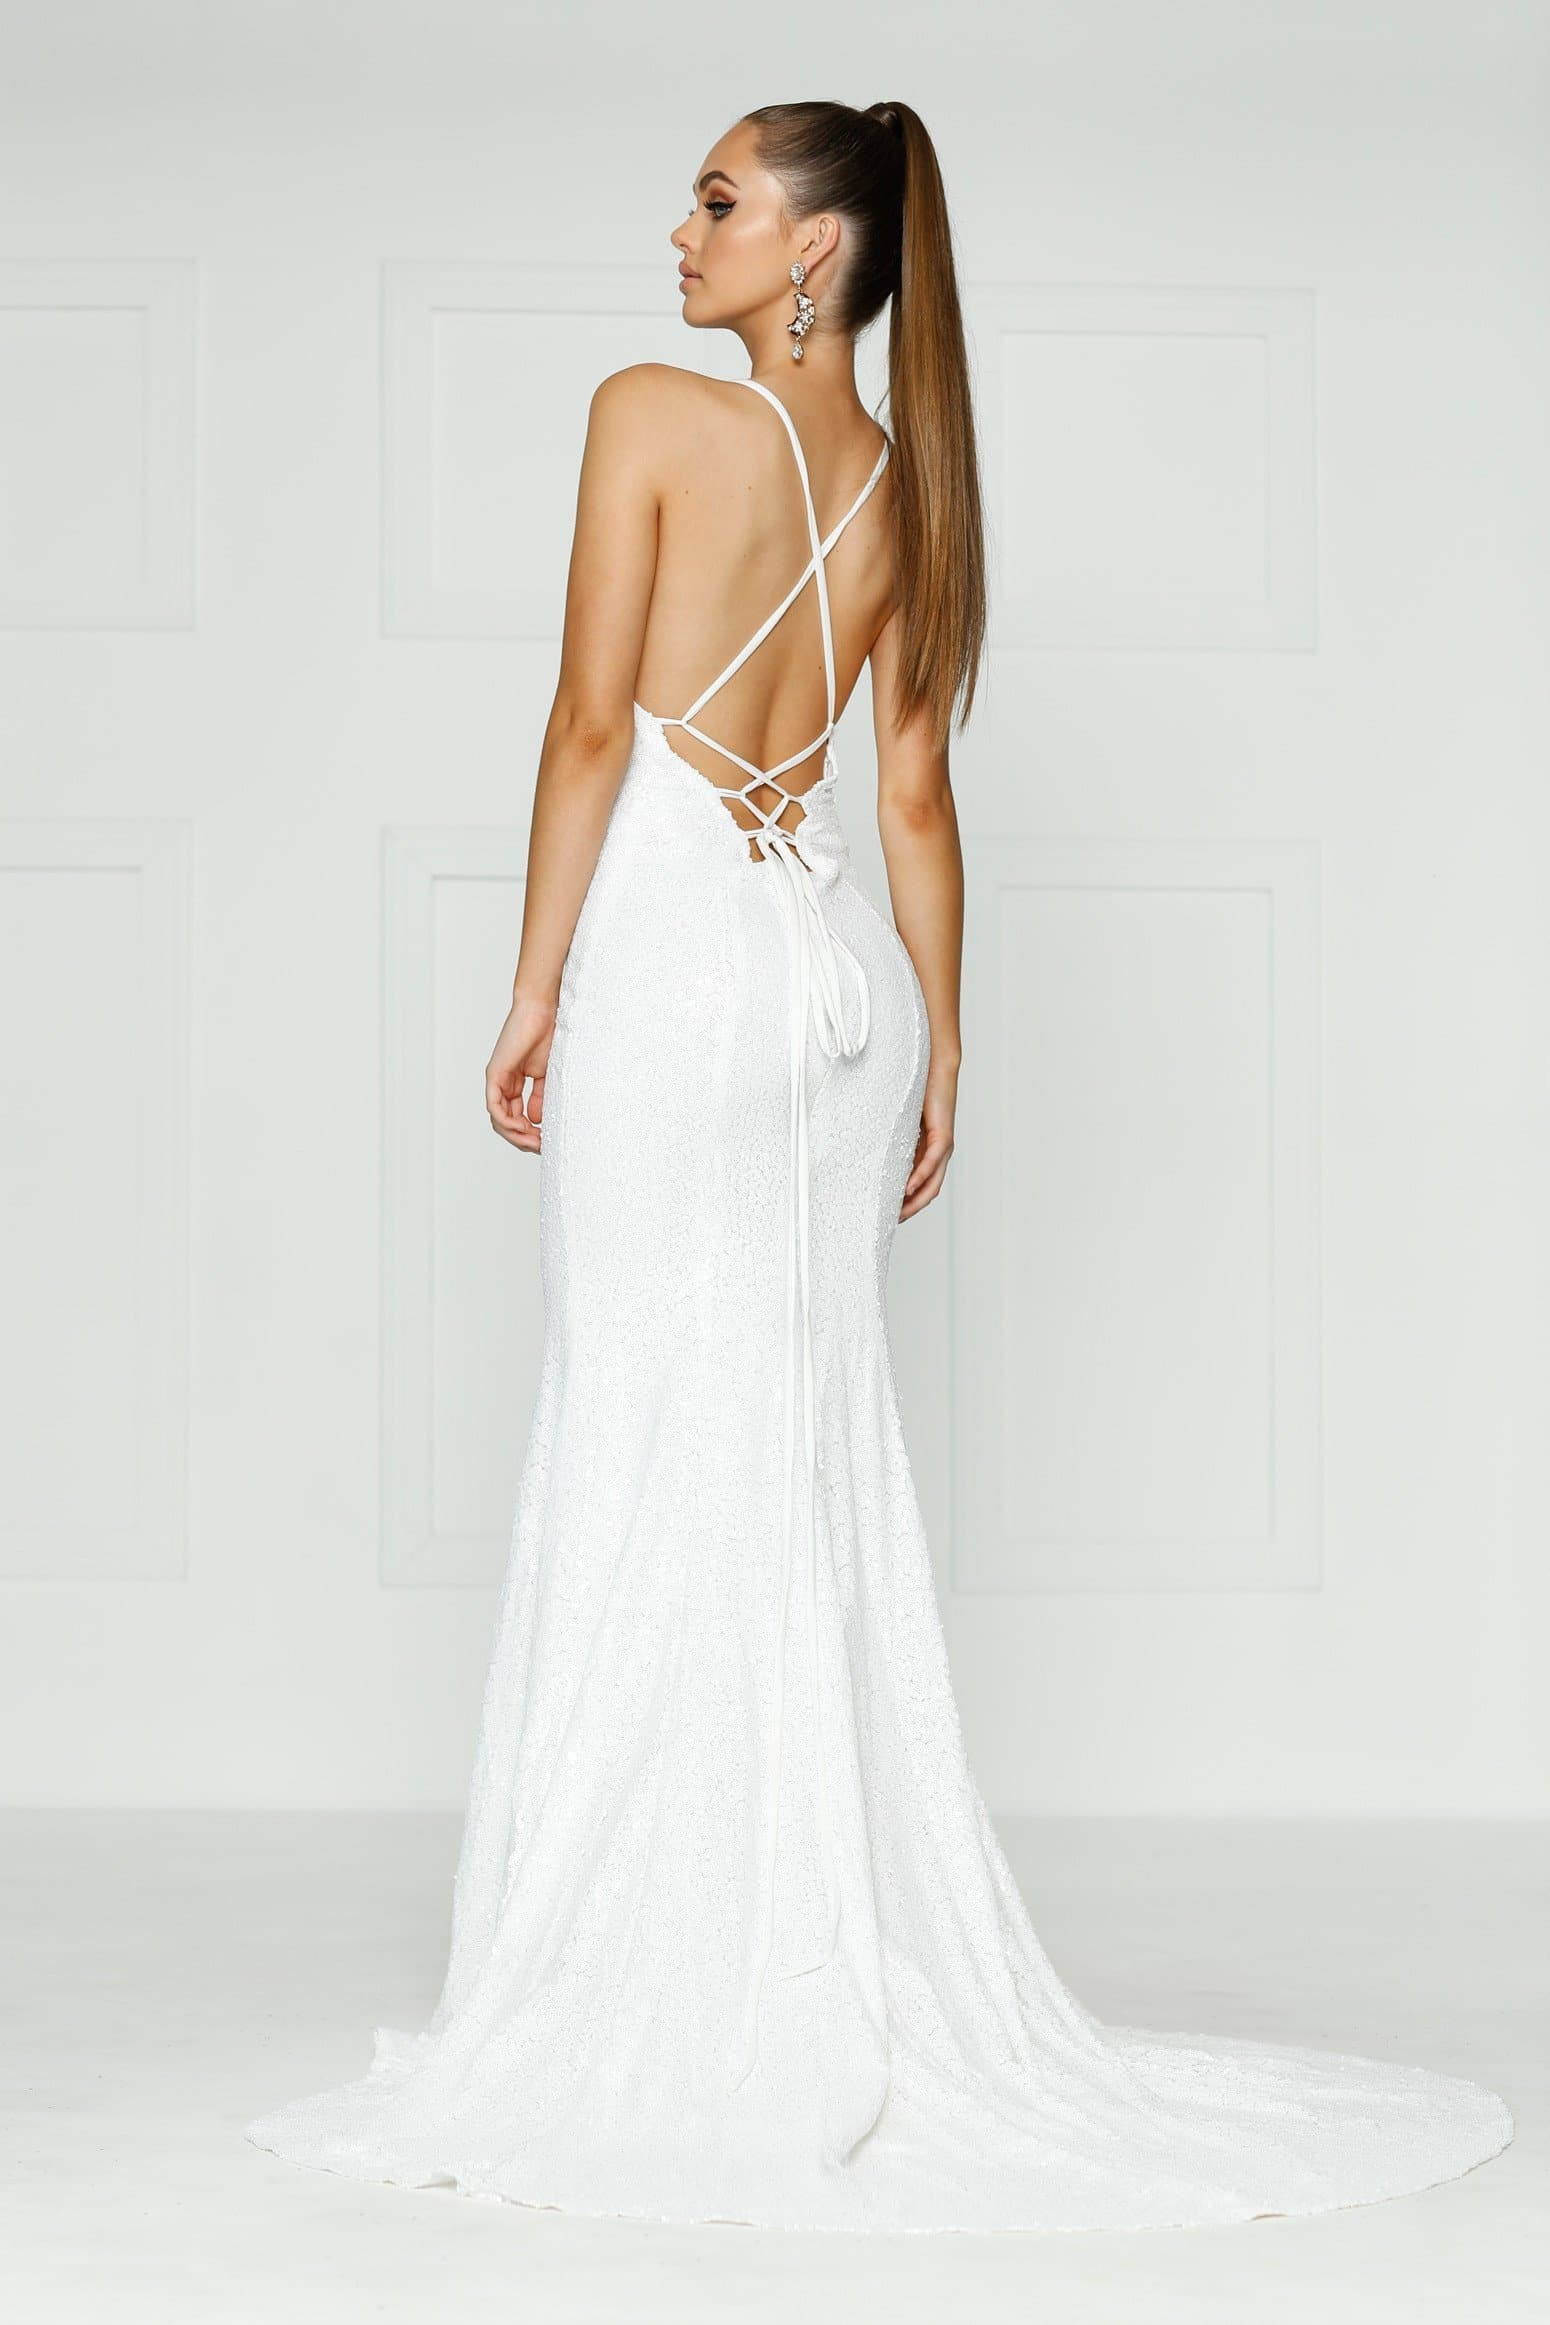 A&N Kendall - White Sequin Dress with Criss Cross Back and V Neck